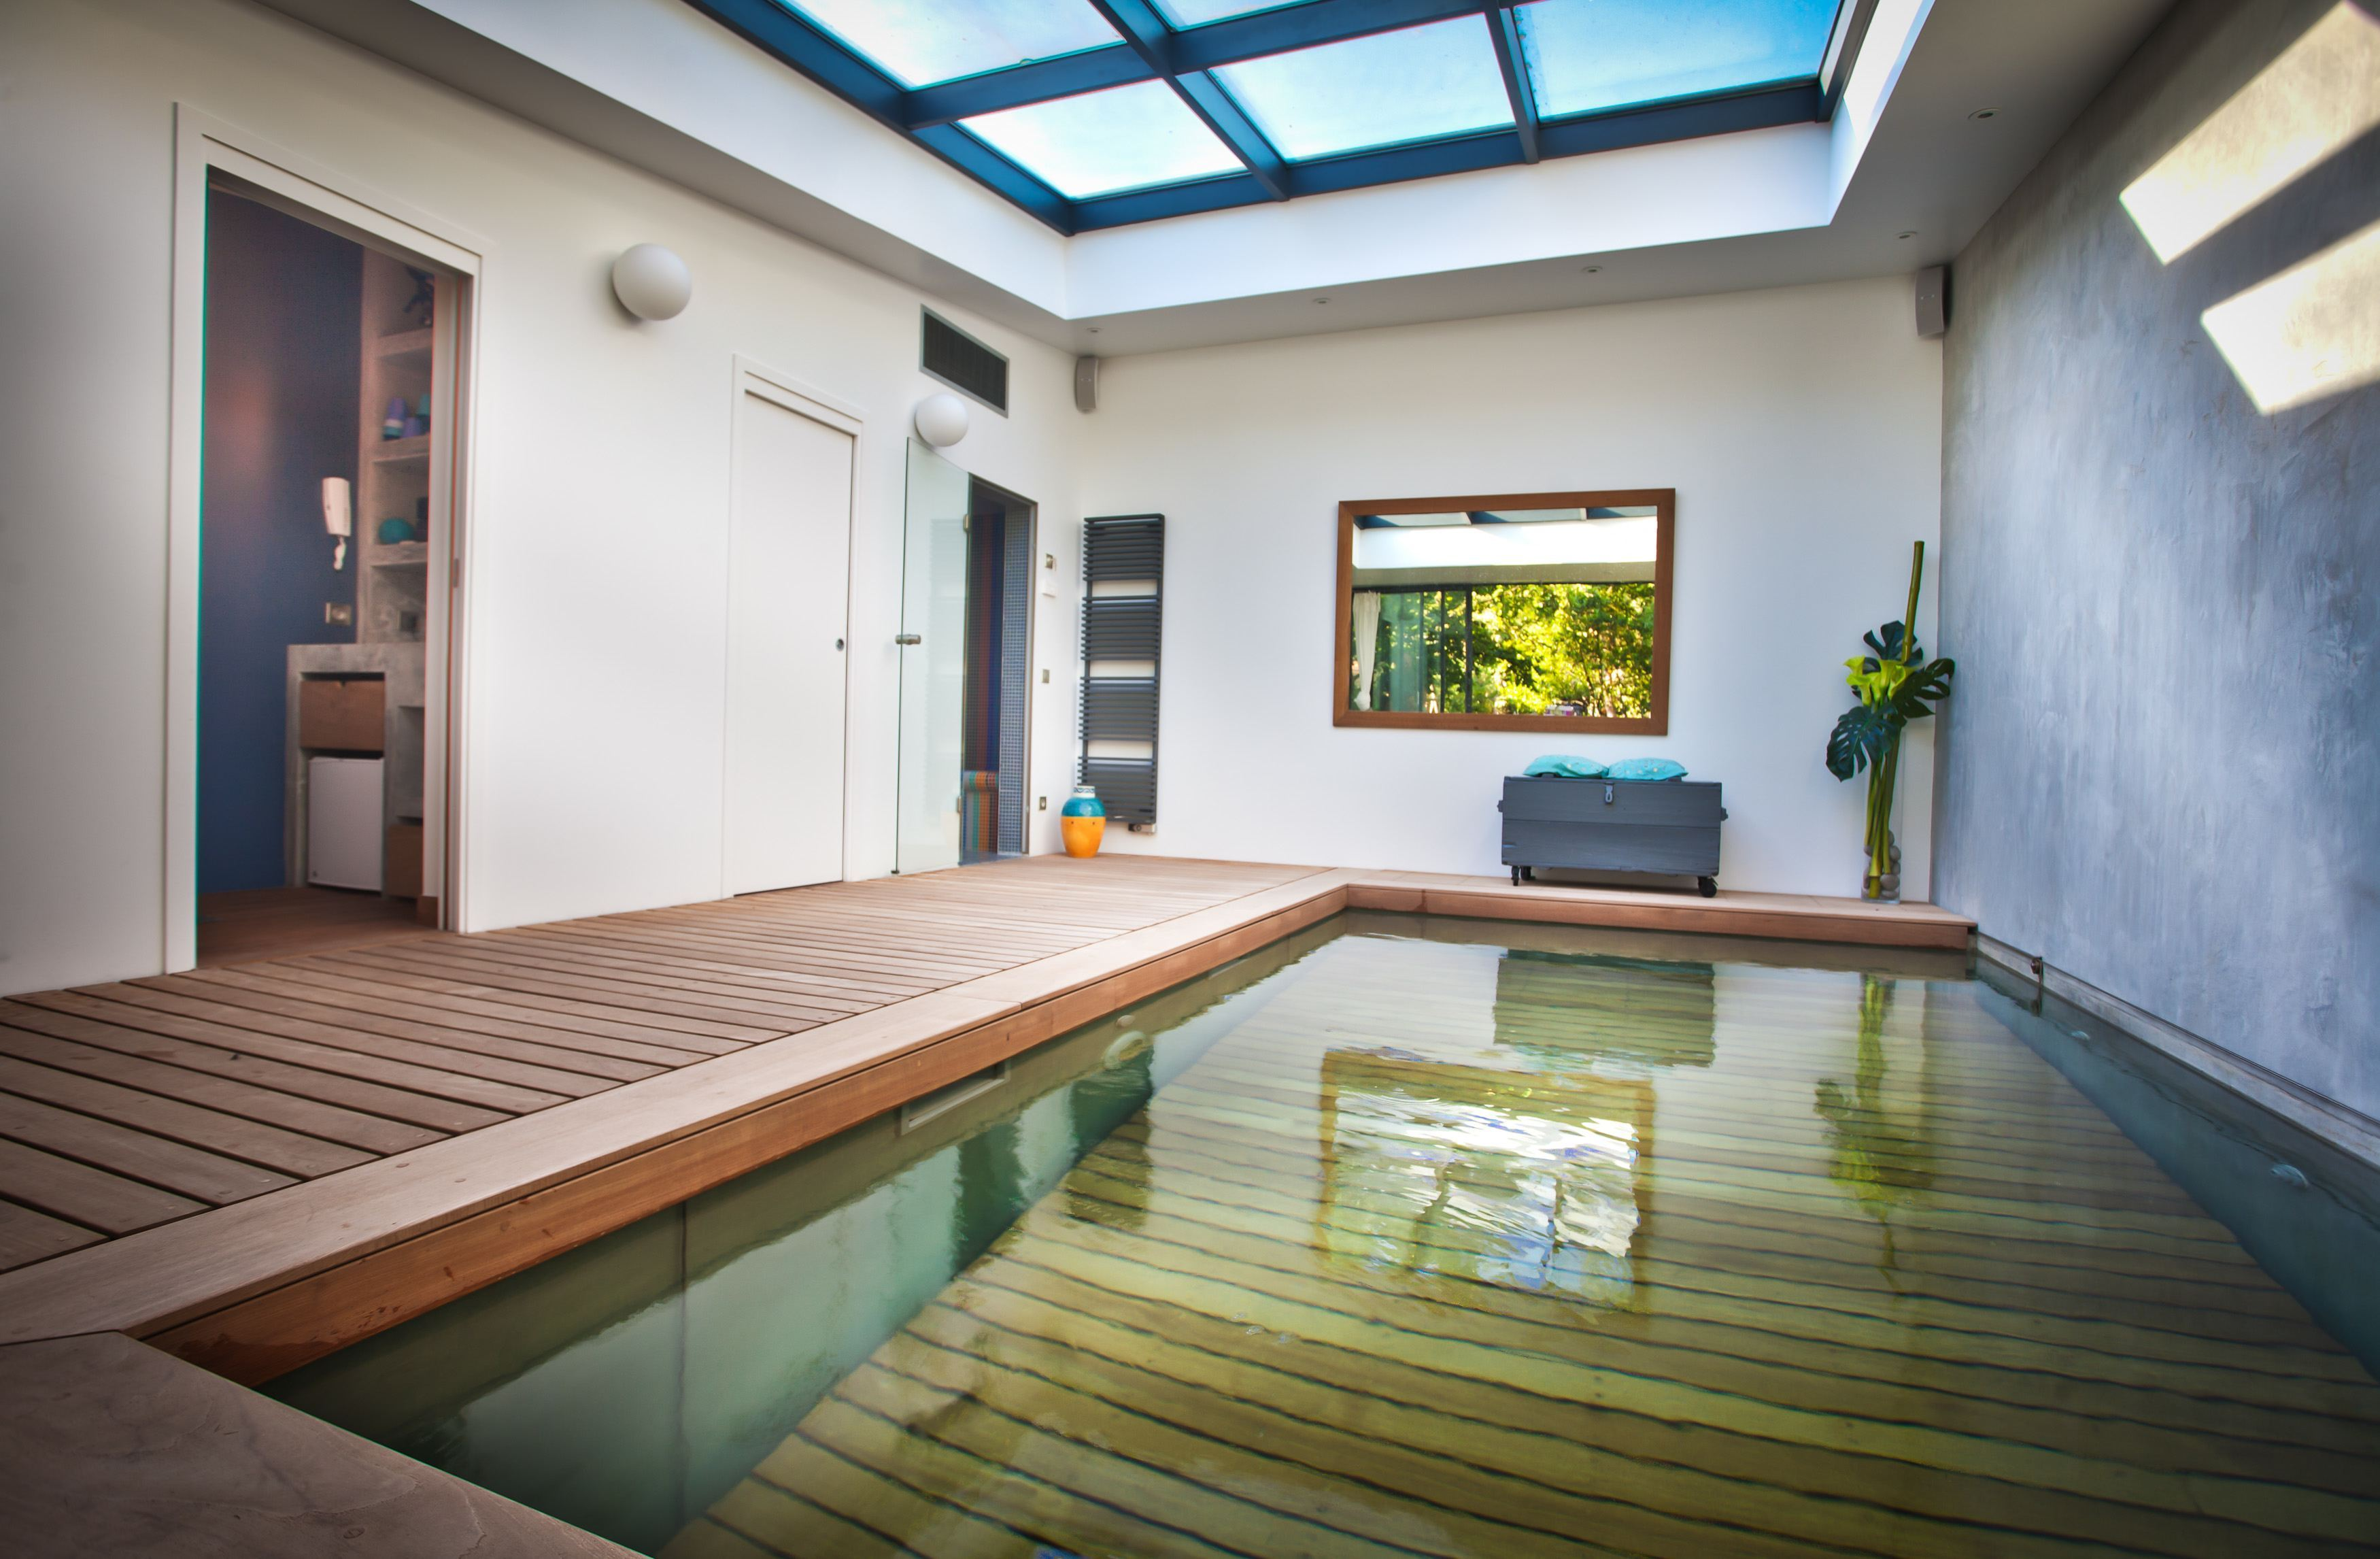 PHOTOS. Cette piscine couverte donne envie de s\'installer en ...